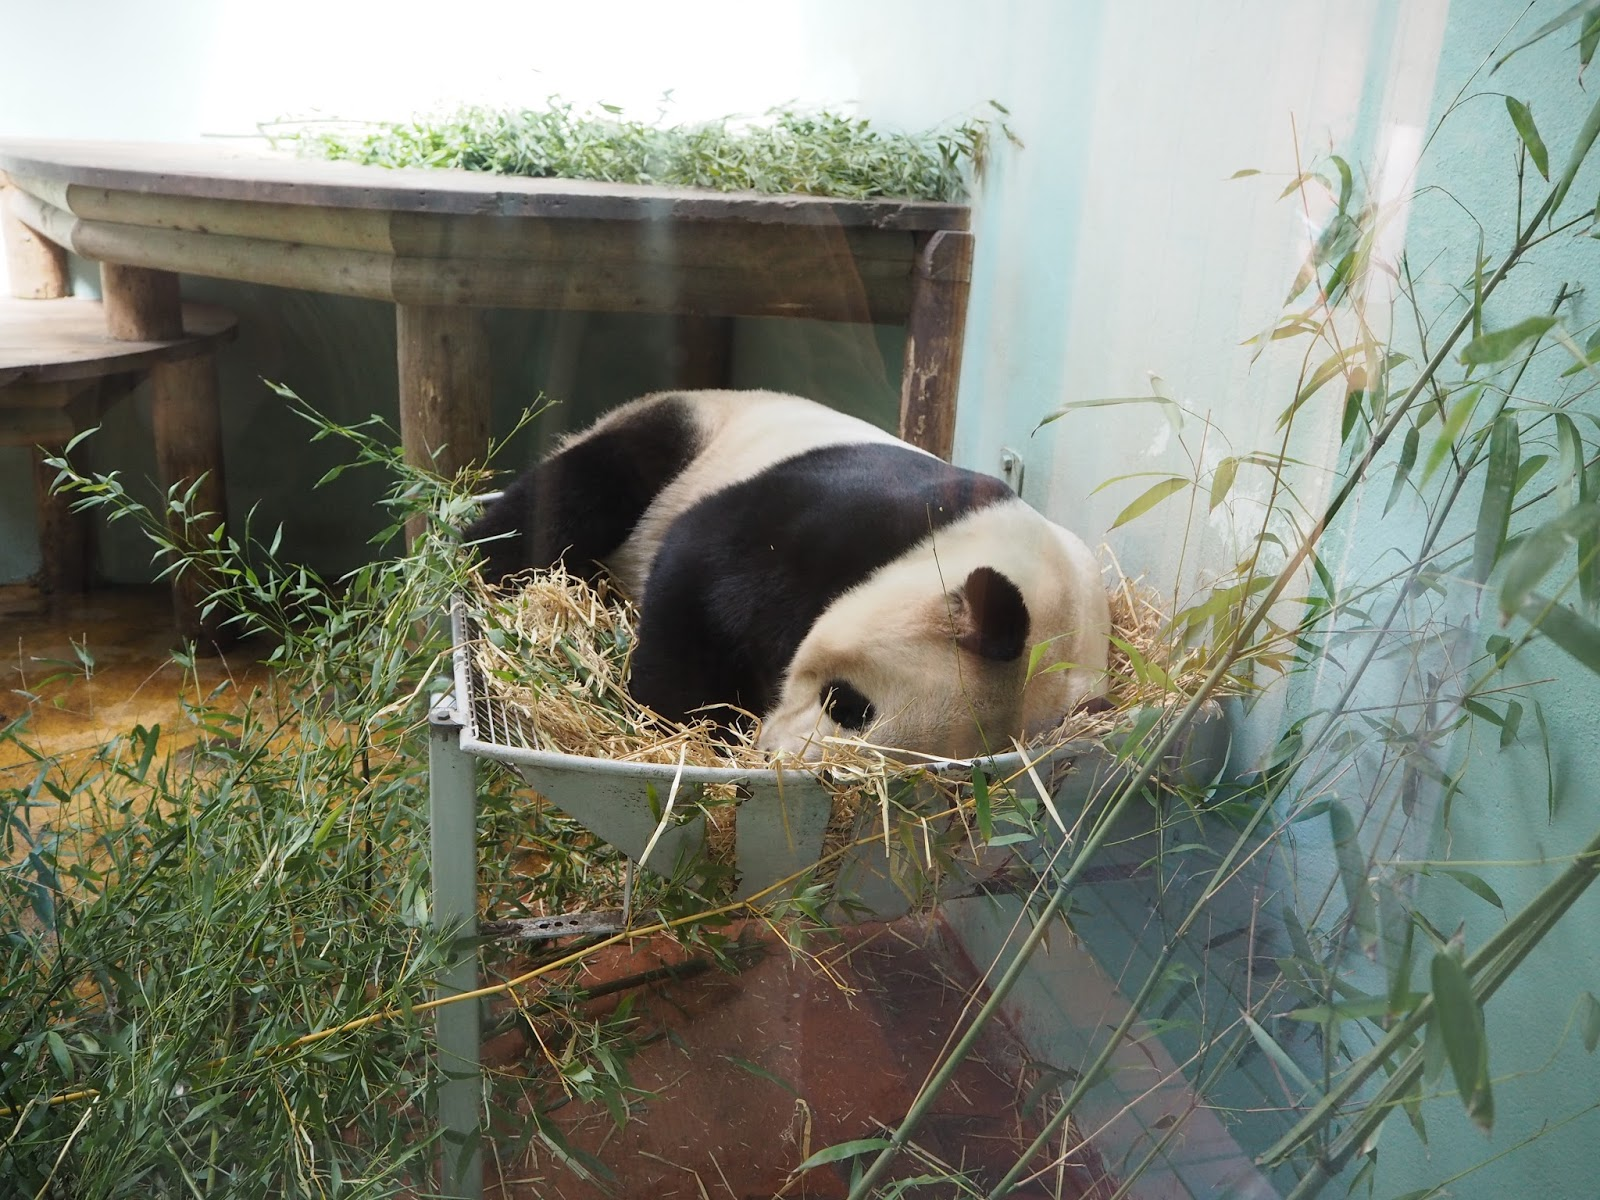 edinburgh zoo pandas